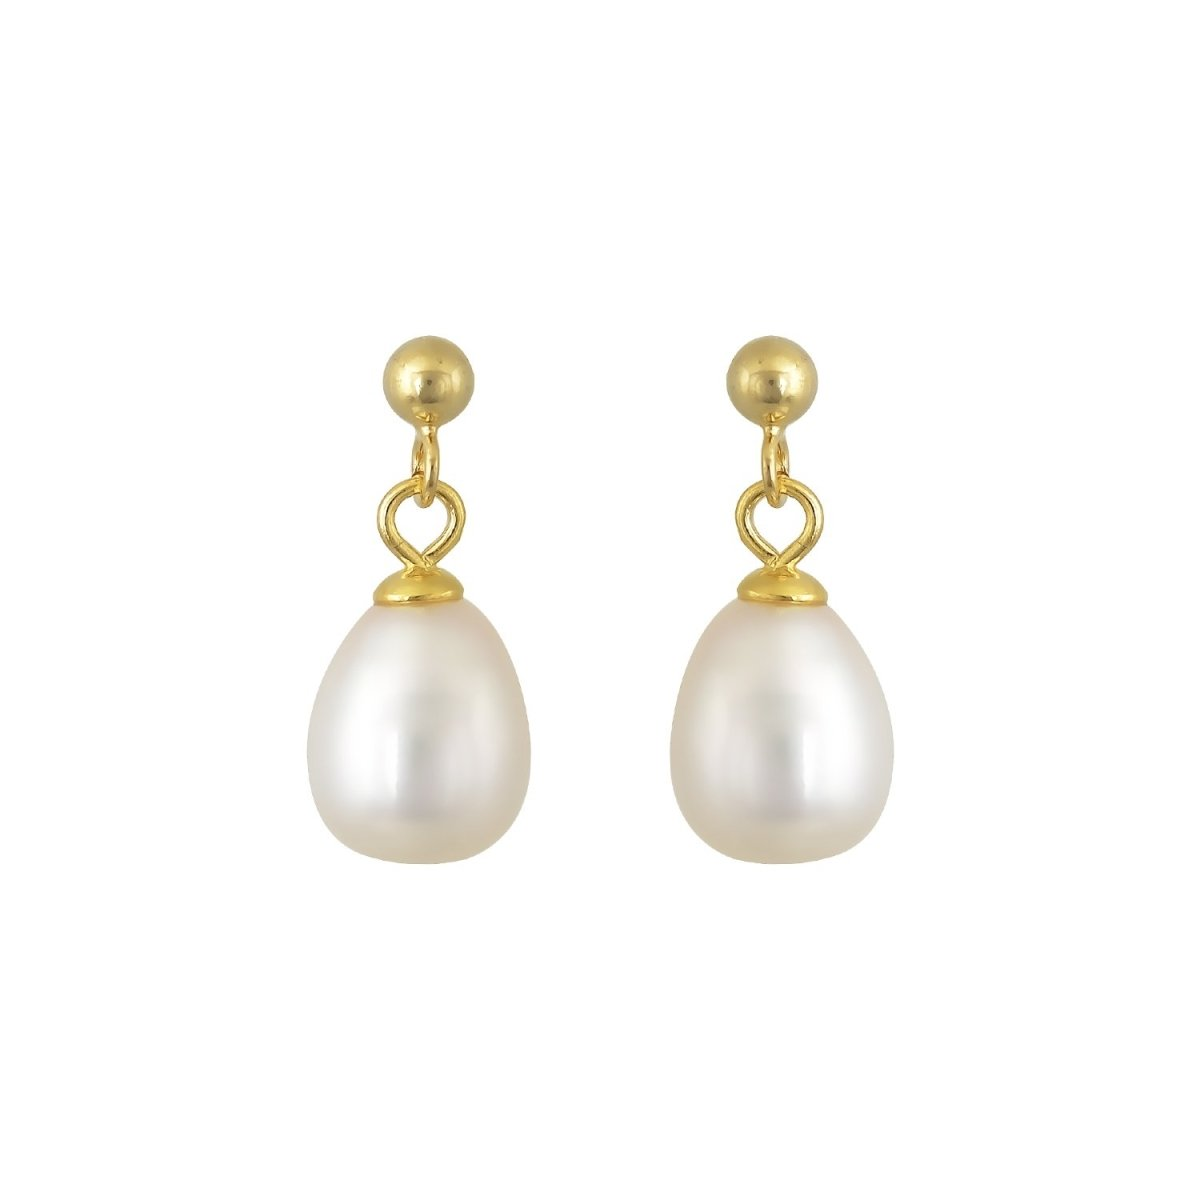 Earrings ER31361 Gold Plated Pendants - Goldy Jewelry Store